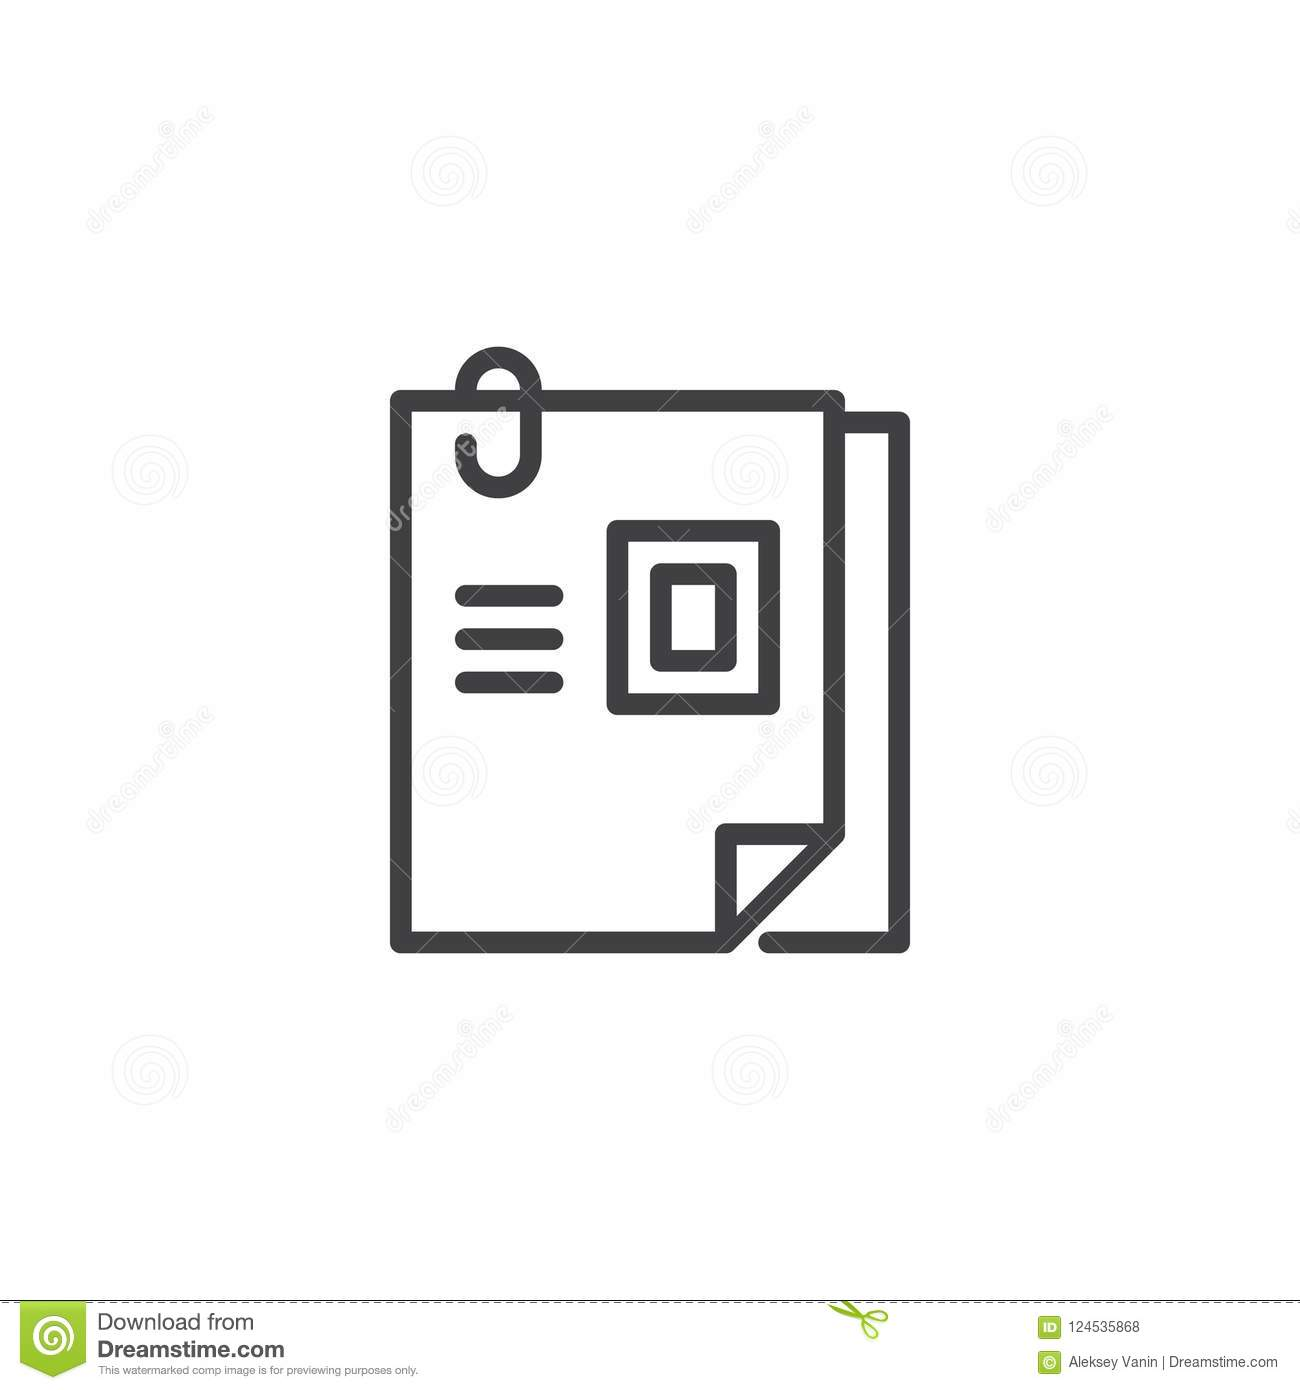 curriculum vitae outline icon stock vector illustration of